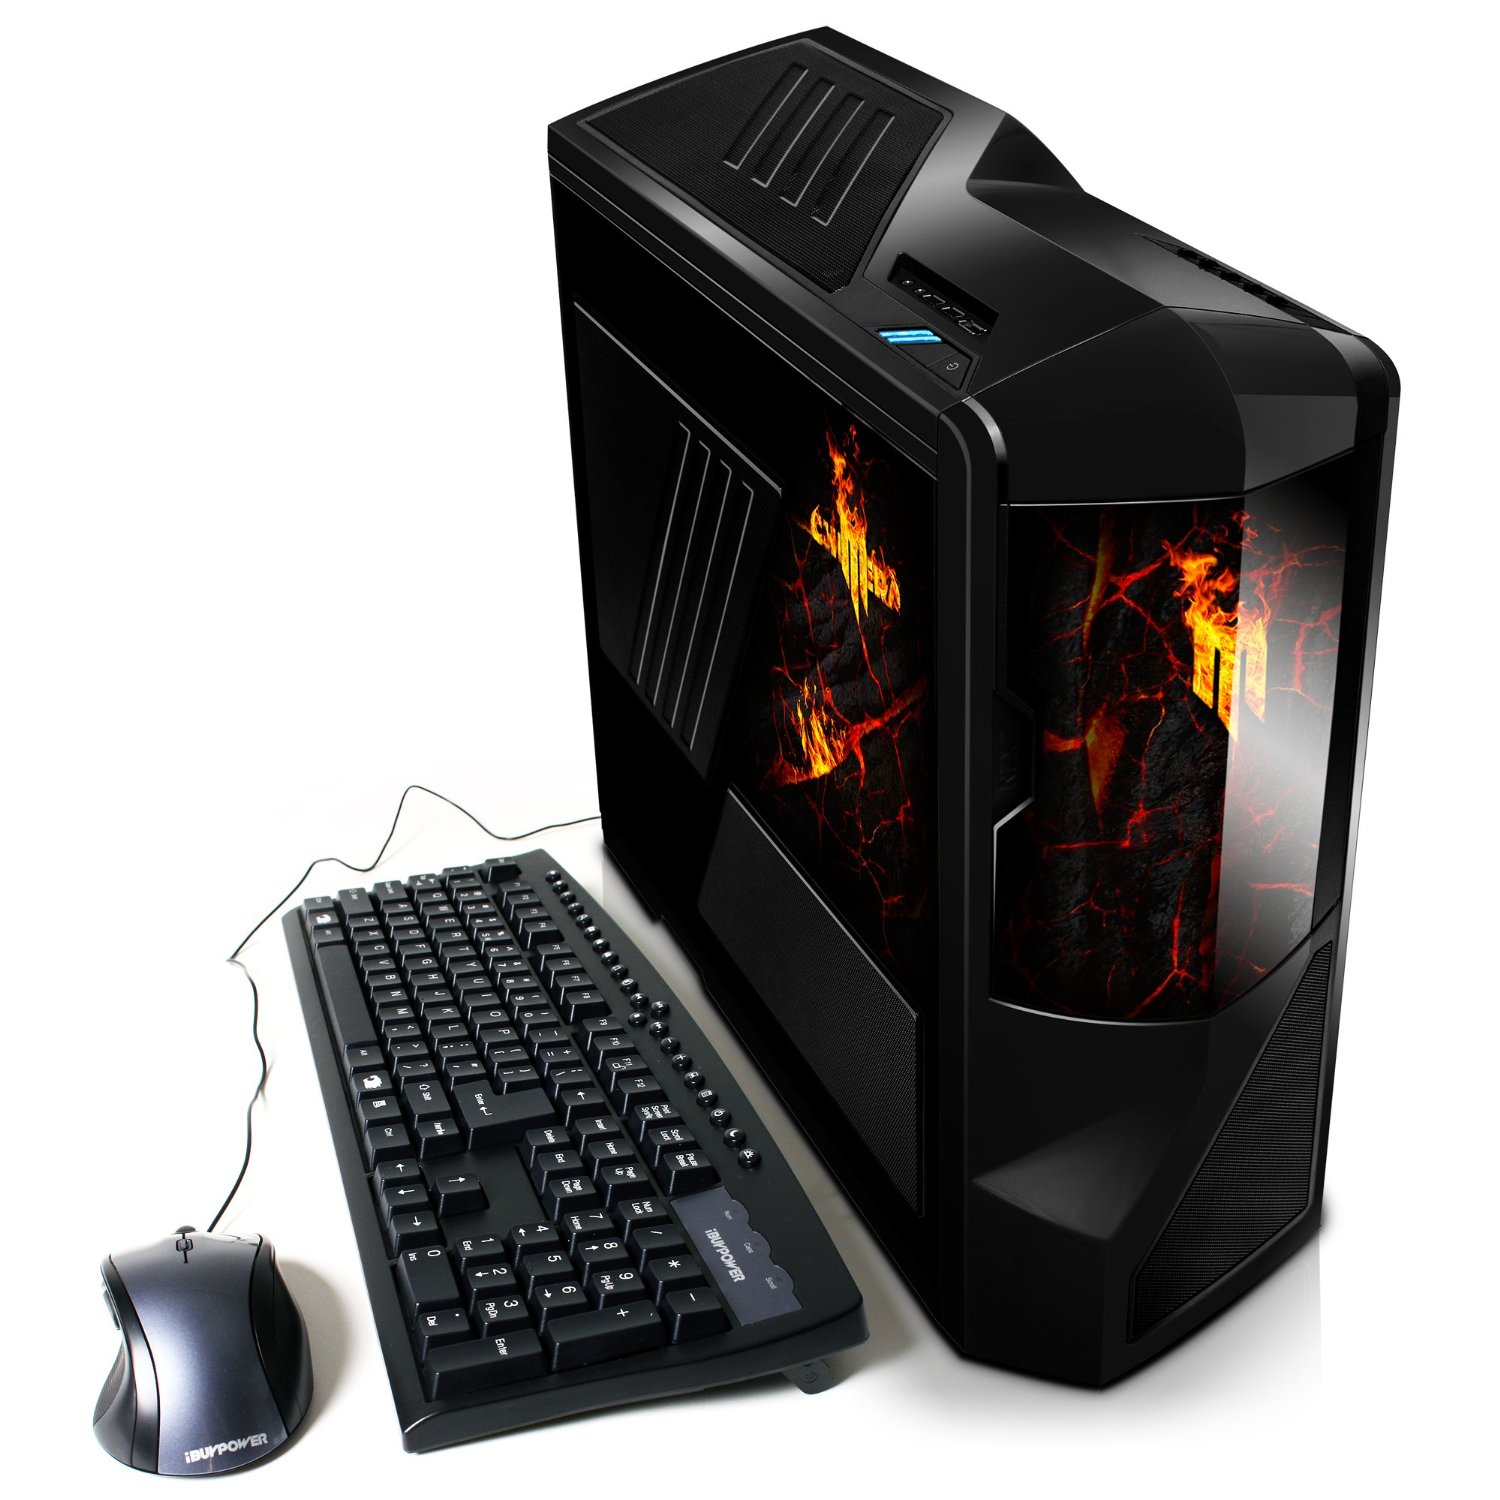 What's the Best Desktop Gaming Computer for 2011 – 2012?